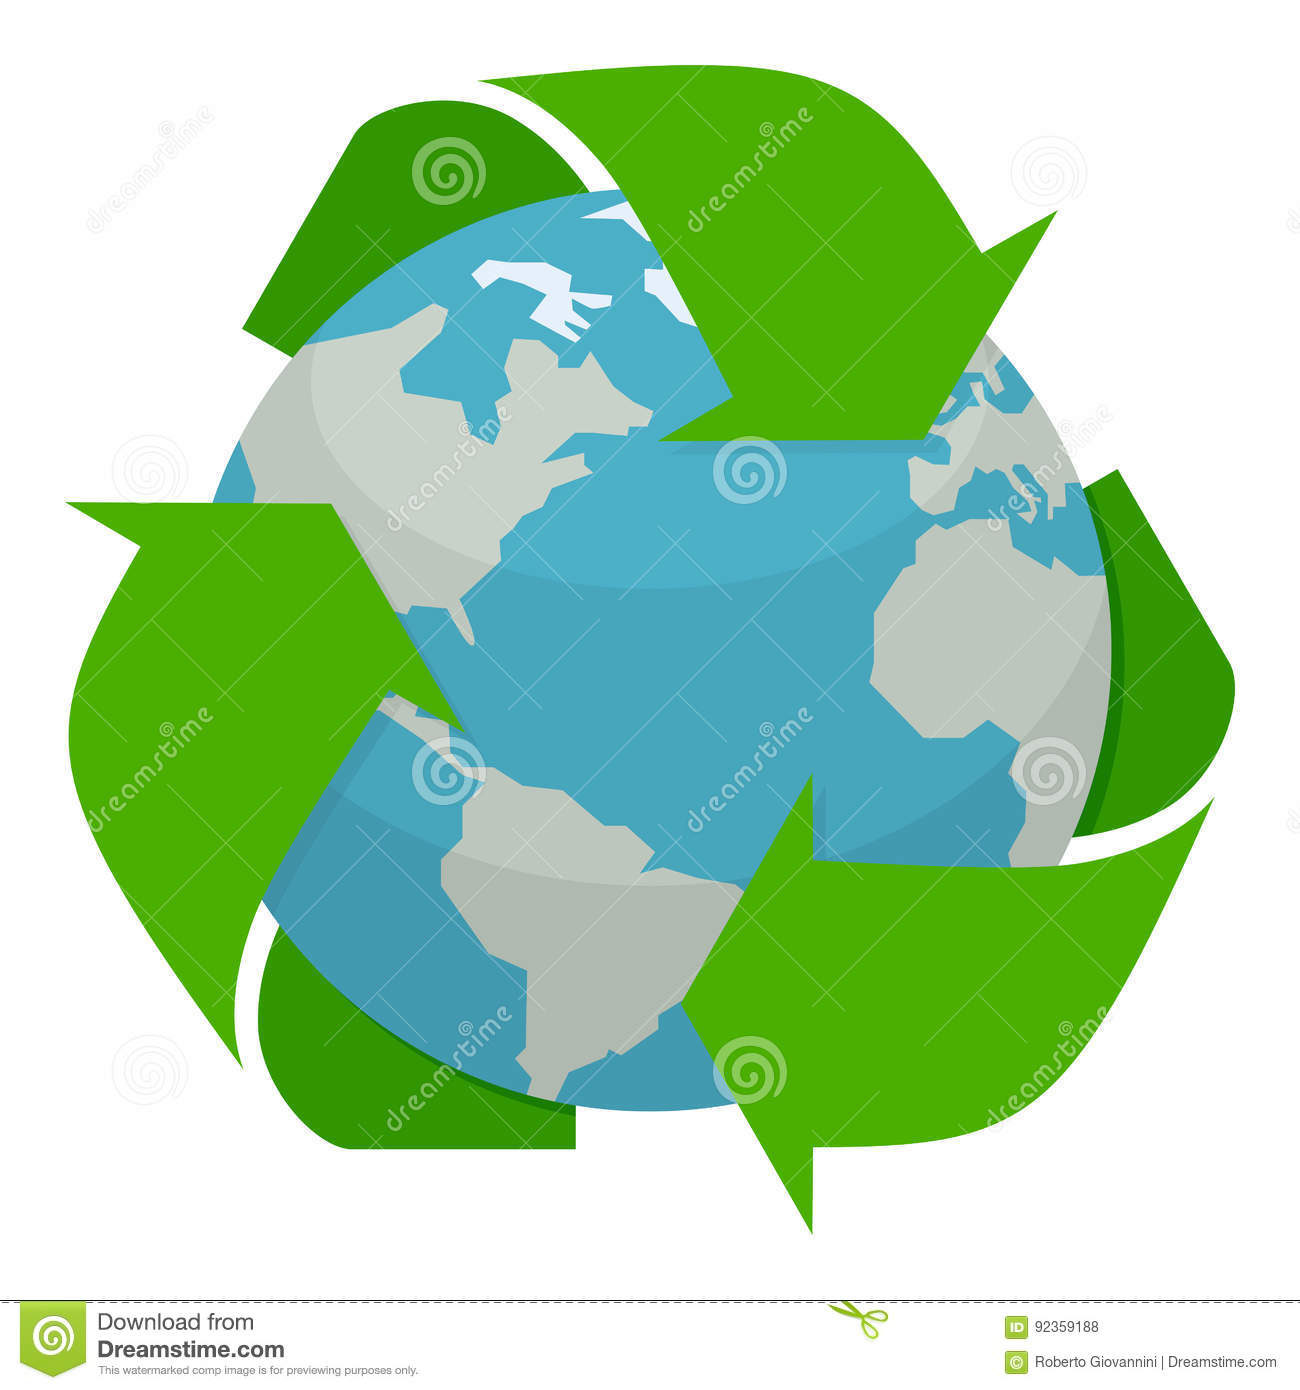 Planet earth with recycle symbol flat icon stock vector planet earth with recycle symbol flat icon buycottarizona Choice Image